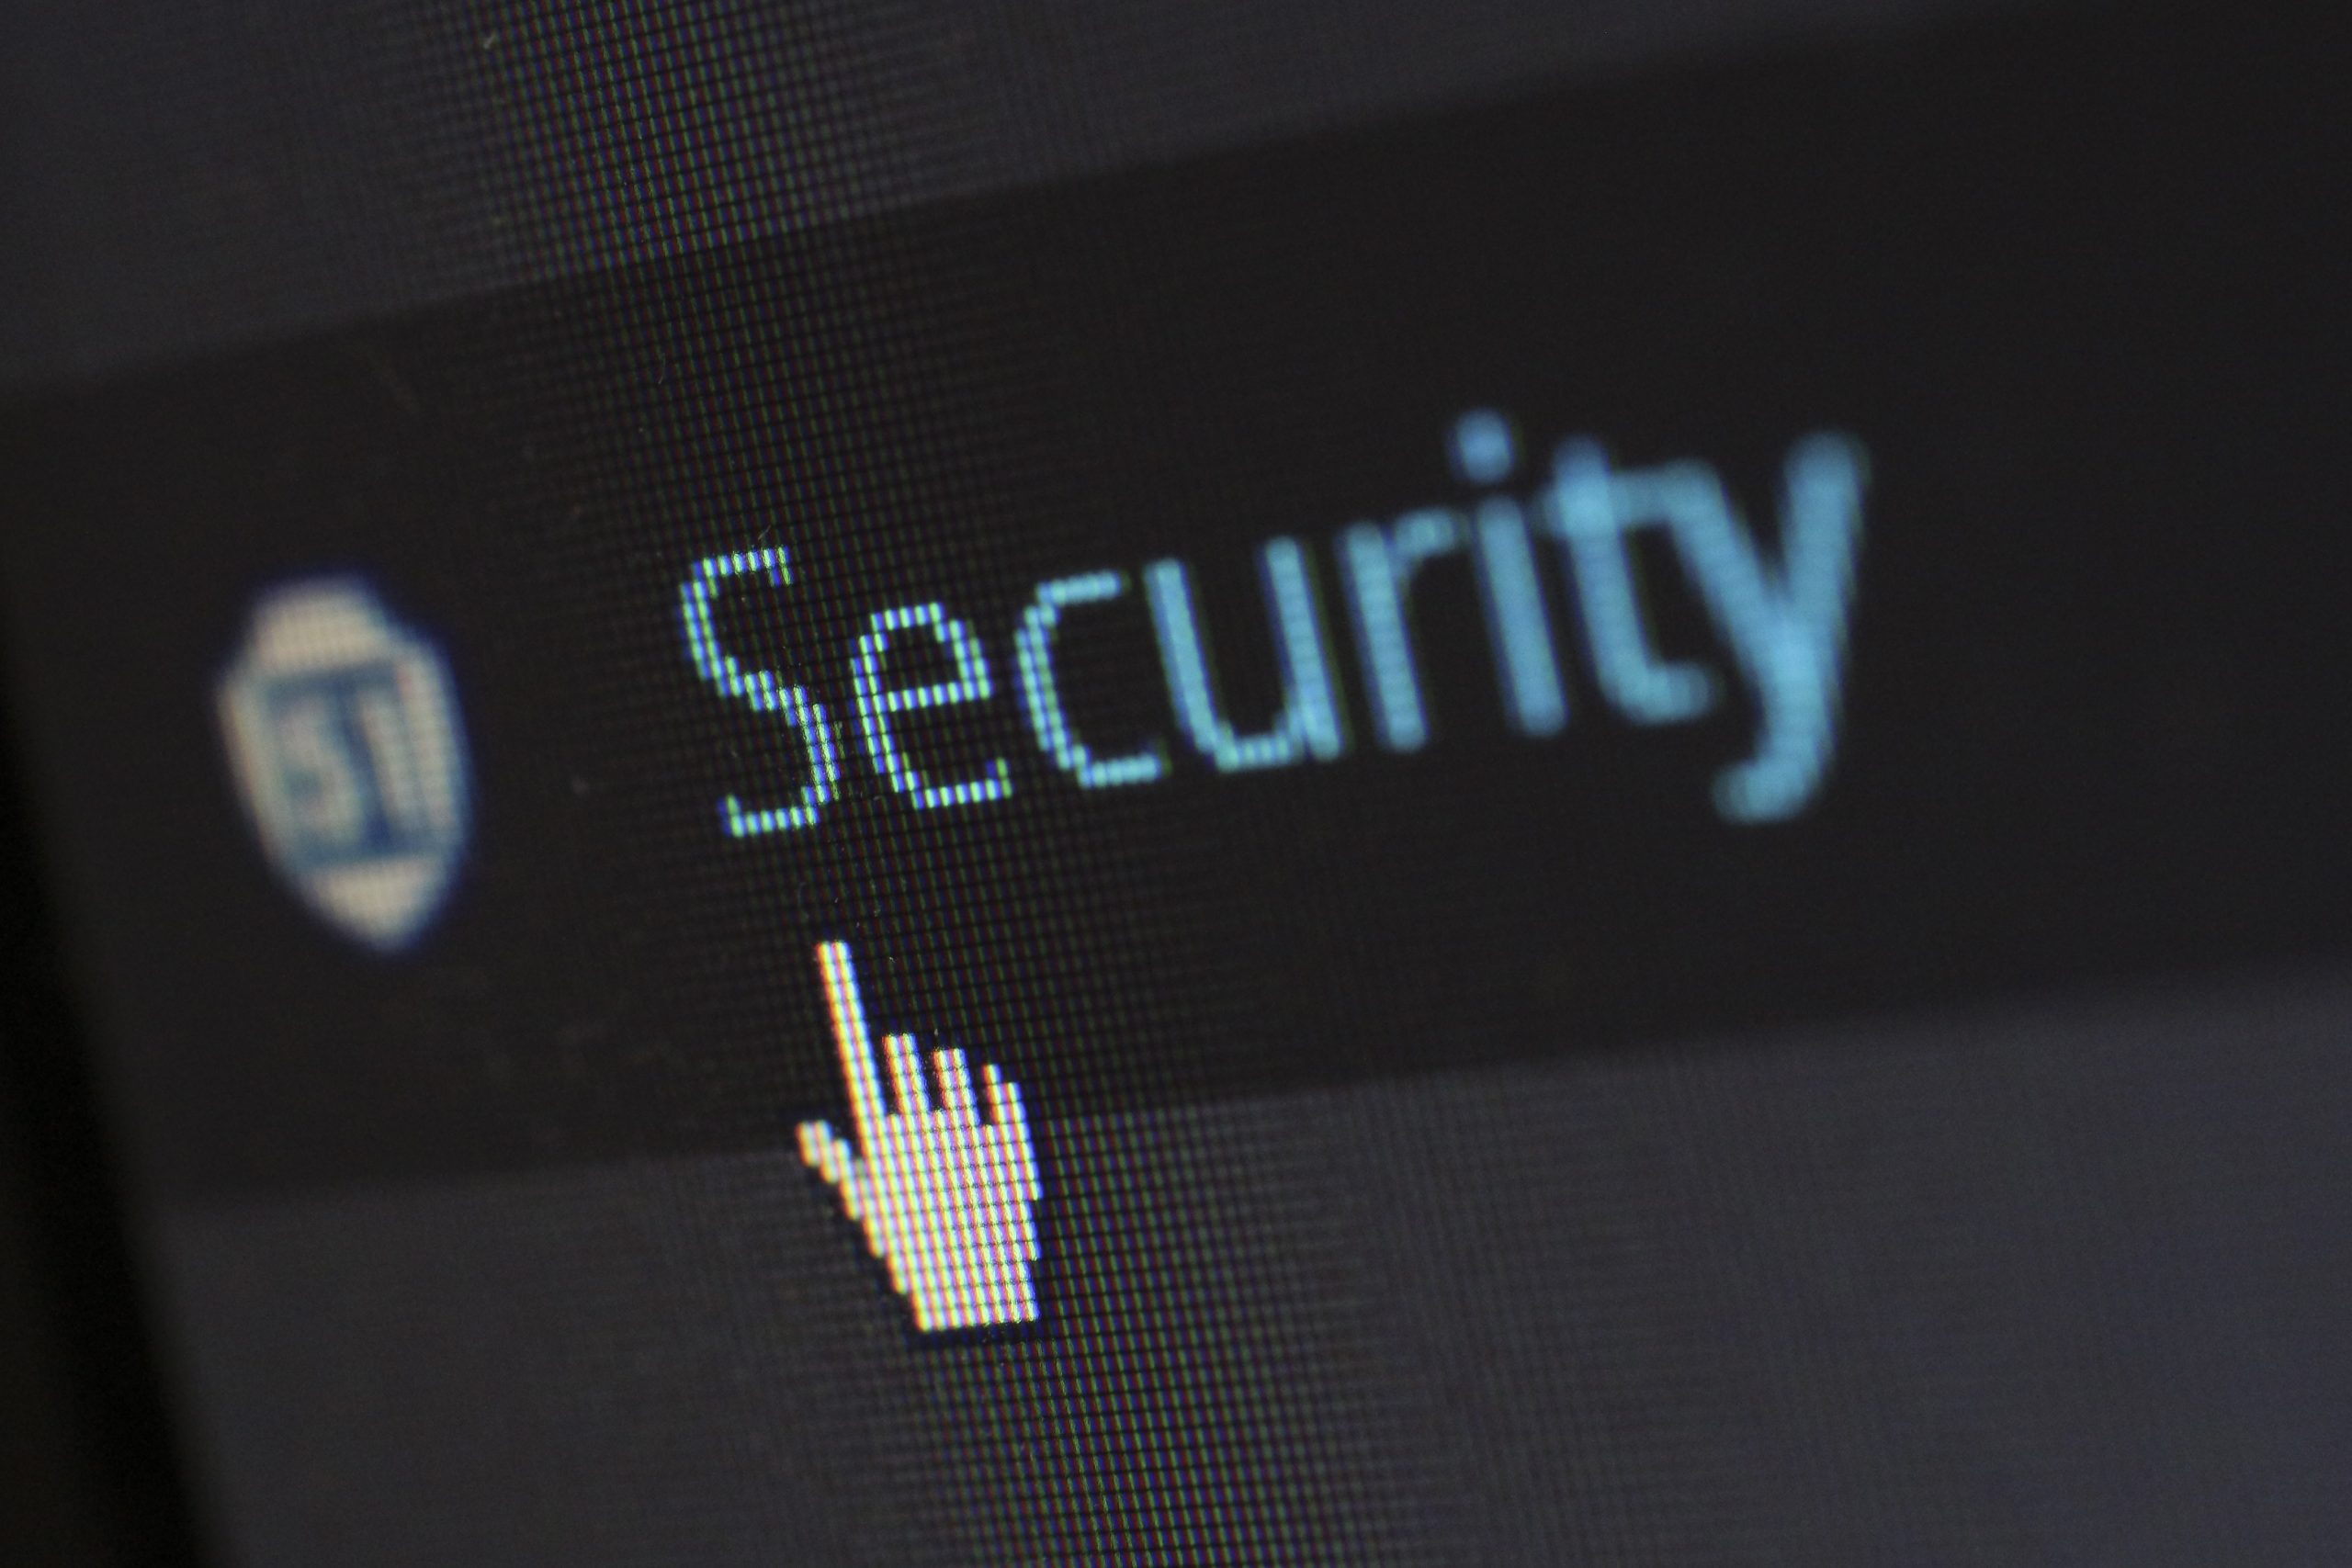 New Applicants Sought for IUK's Cyber Security Academic Start-ups Programme